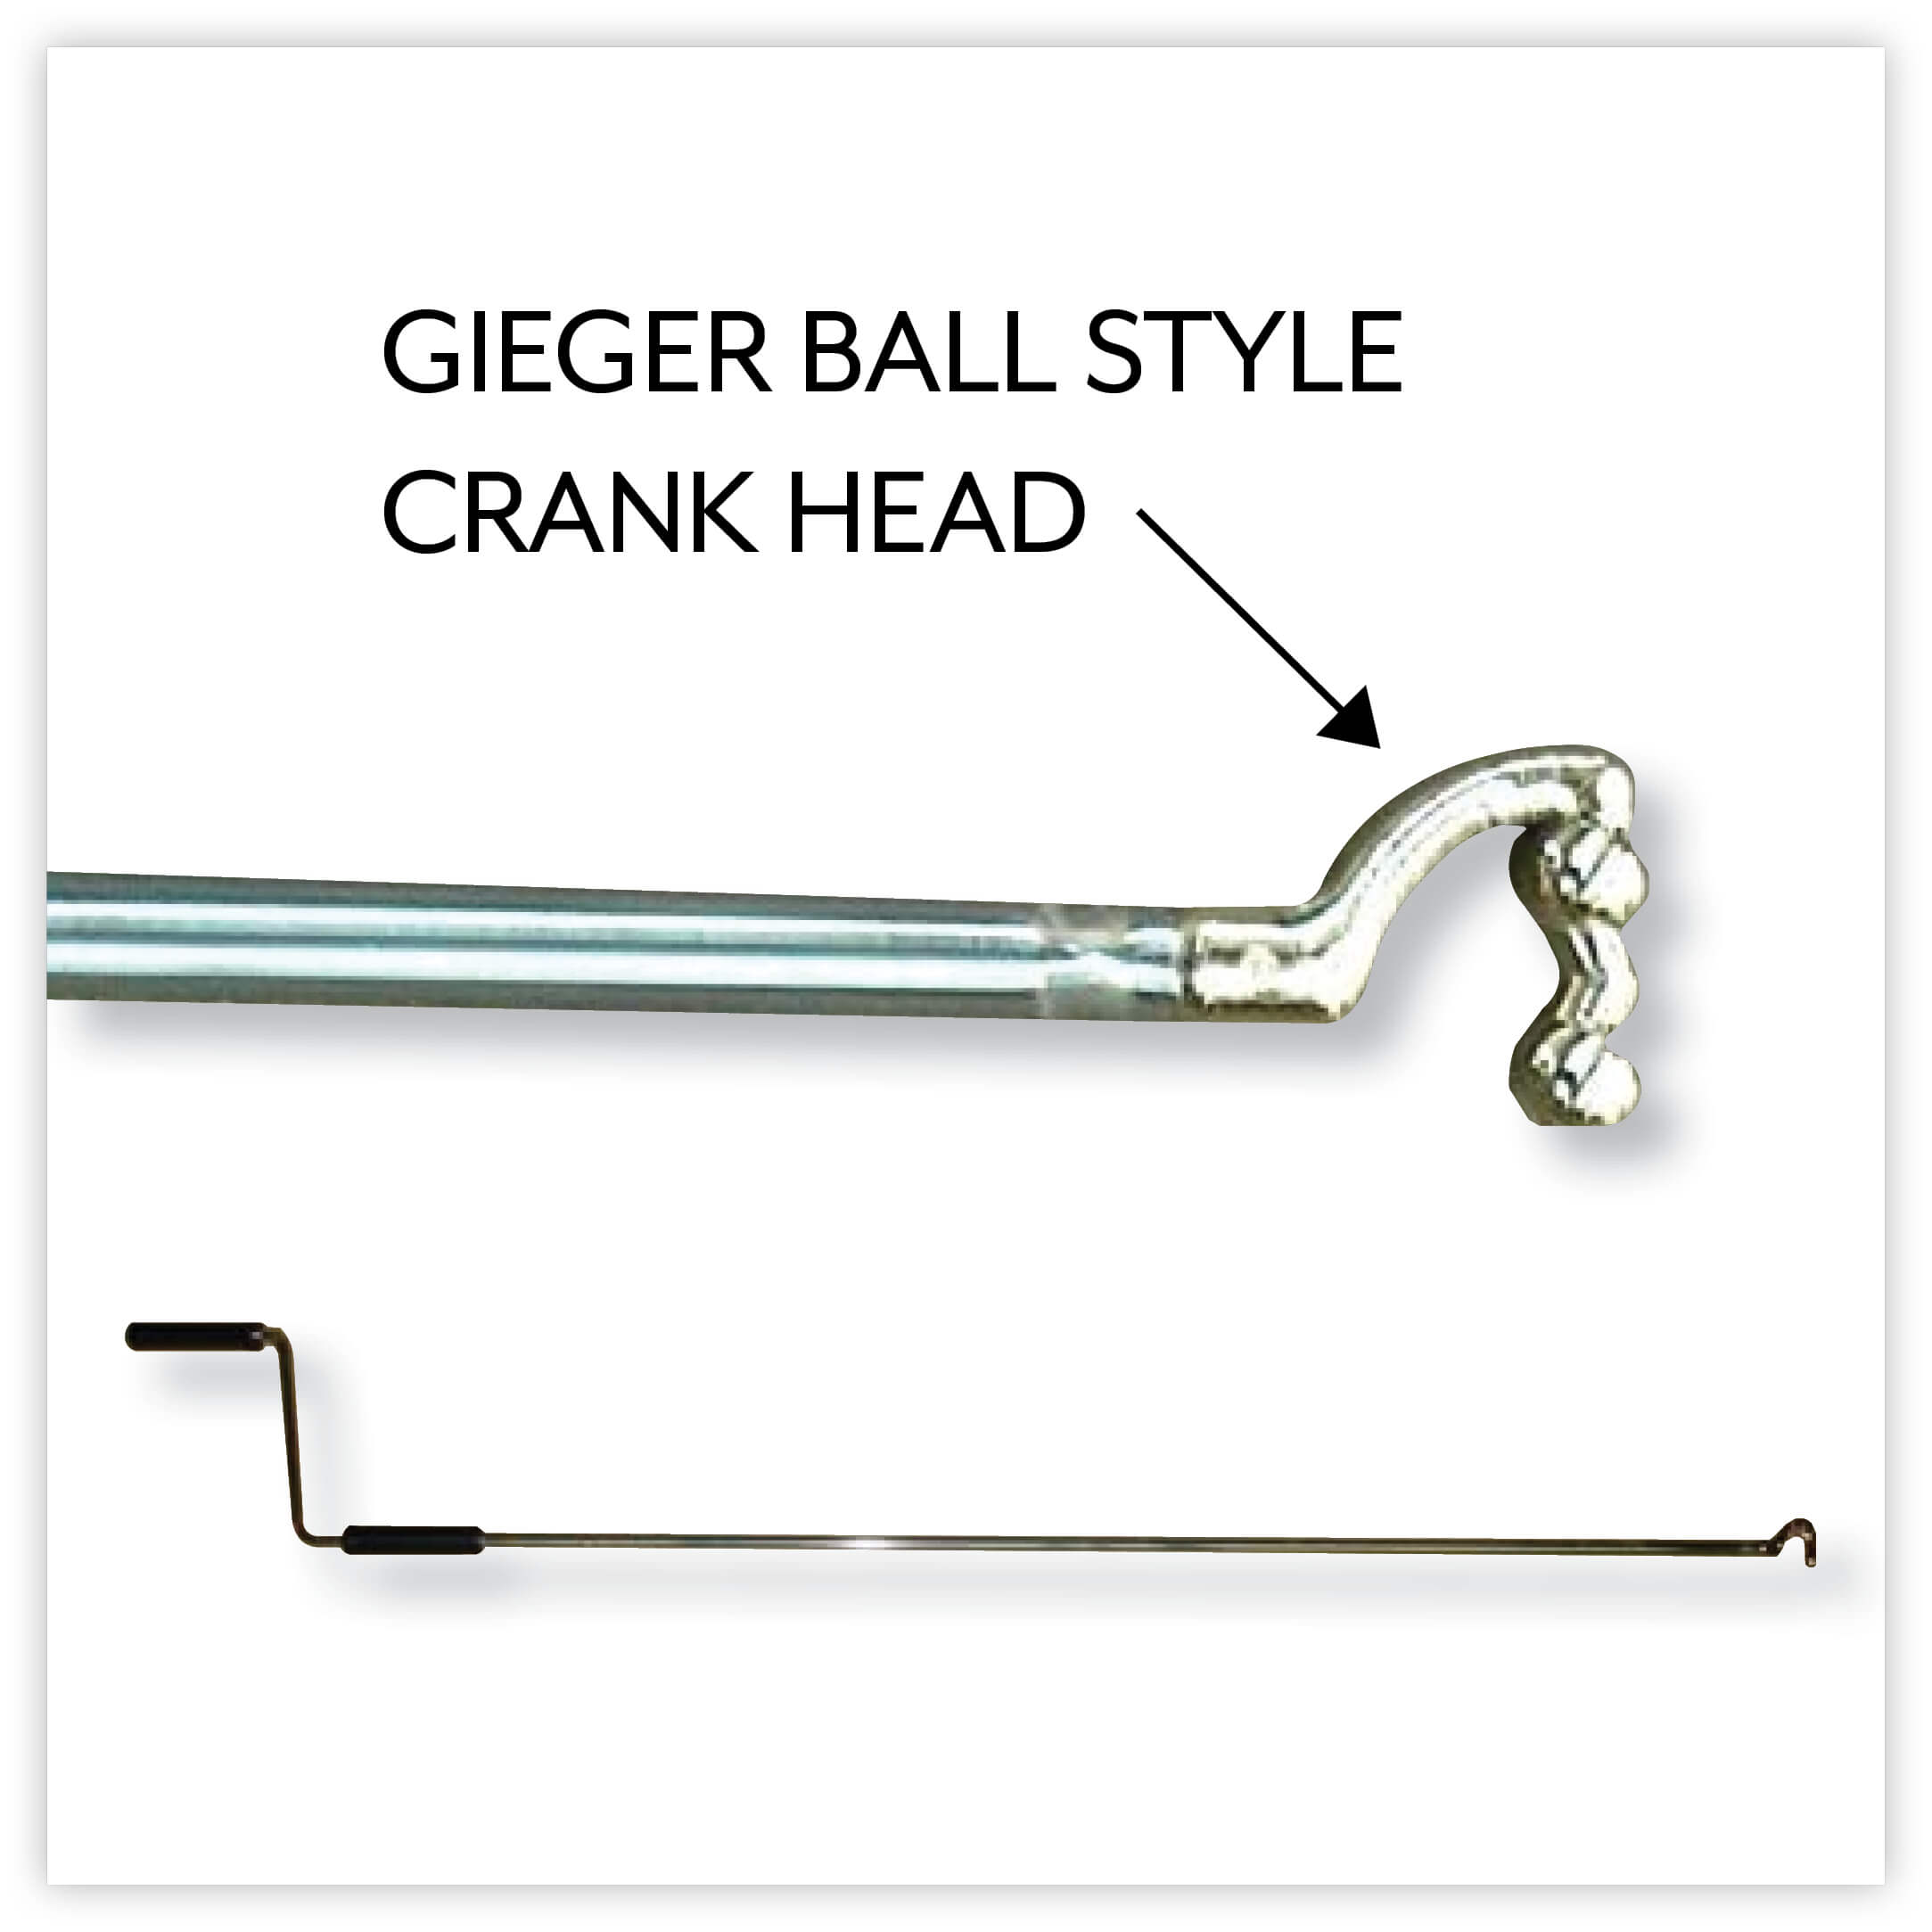 MANUAL CRANK HANDLE FOR ROLLER SHUTTER /& AWNING CANOPY WINDING HANDLE 1 METER